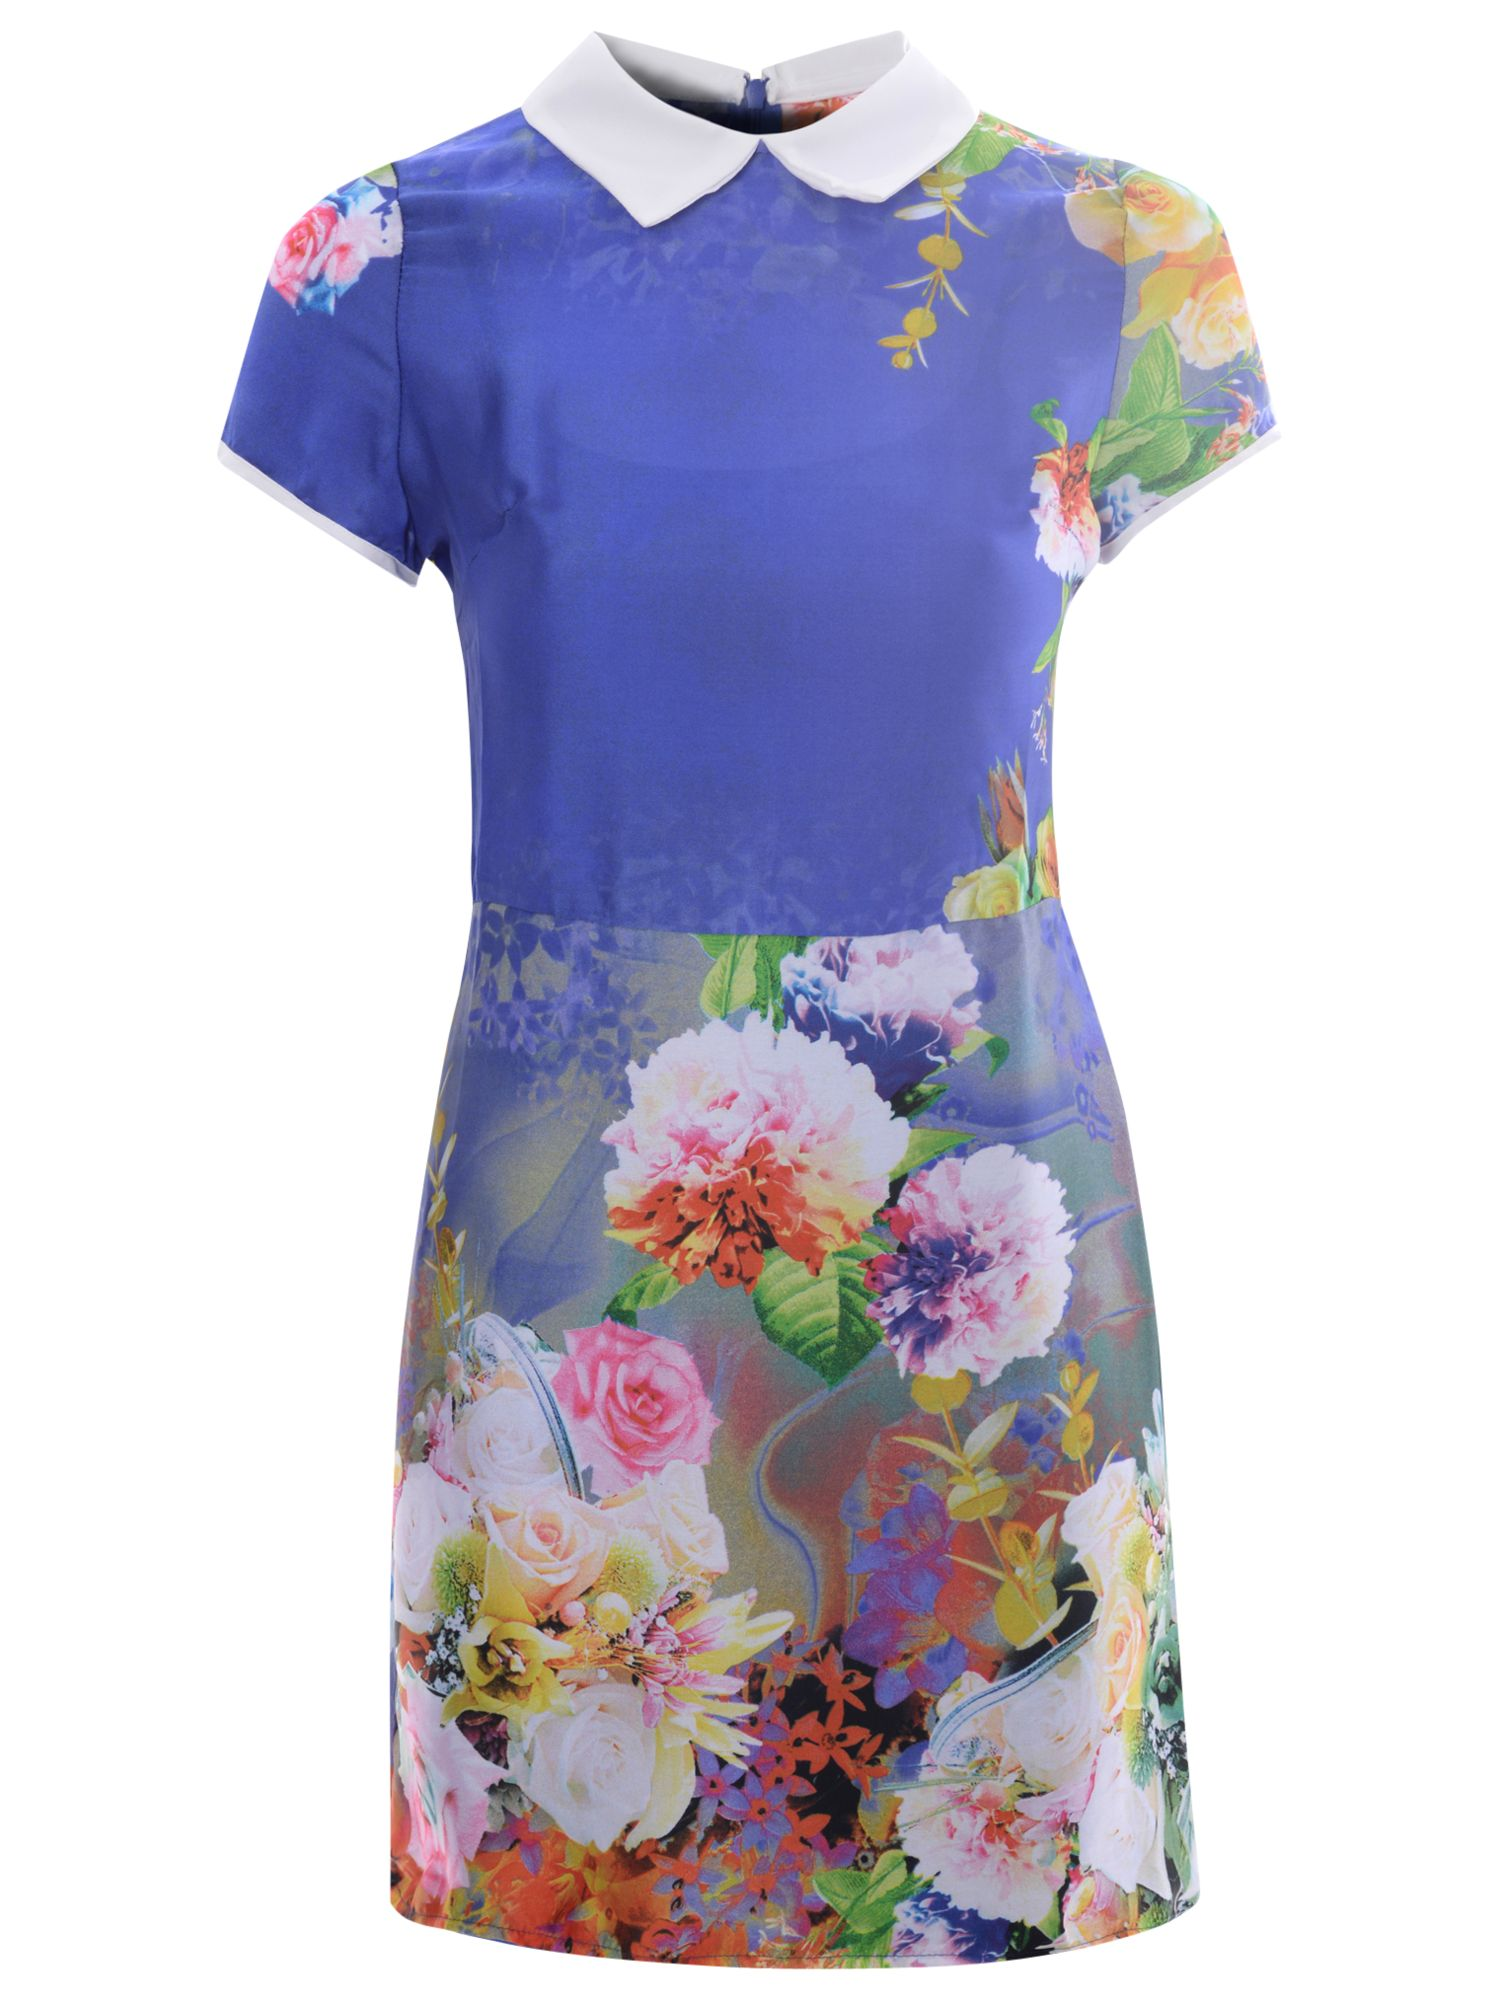 true decadence tropical floral shift dress blue tropical, true, decadence, tropical, floral, shift, dress, blue, true decadence, 14|8, clearance, womenswear offers, womens dresses offers, women, womens dresses, special offers, 1587488